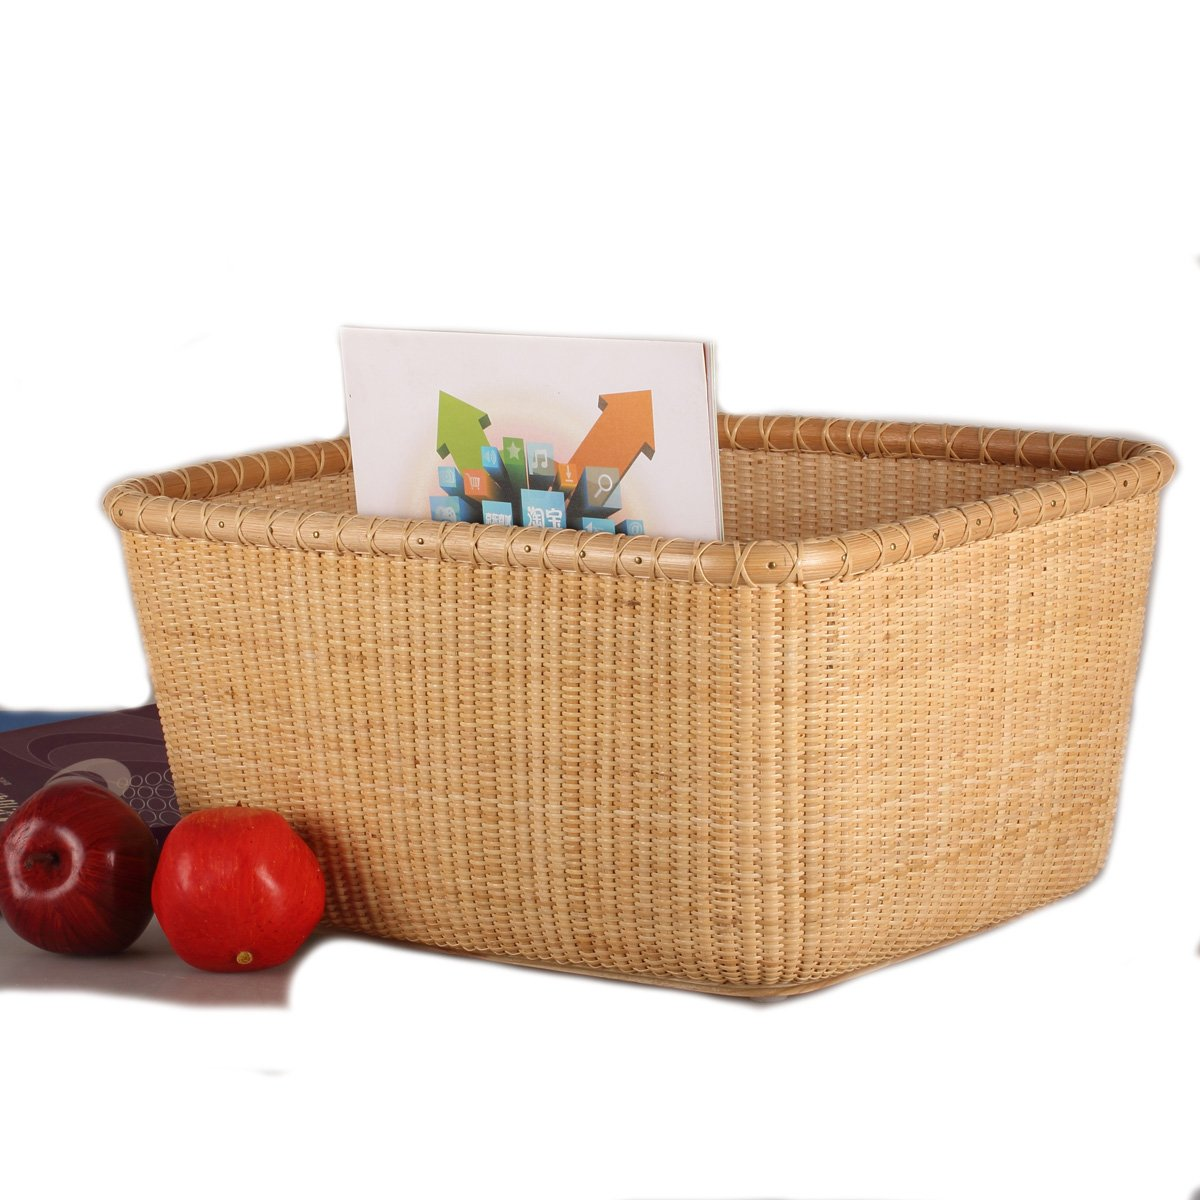 Tengtian Brand, Laundry Basket, Laundry Basket, Storage Basket, Rattan, Chinese Traditional Handicrafts, Casual Style, Natural Environmental Protection